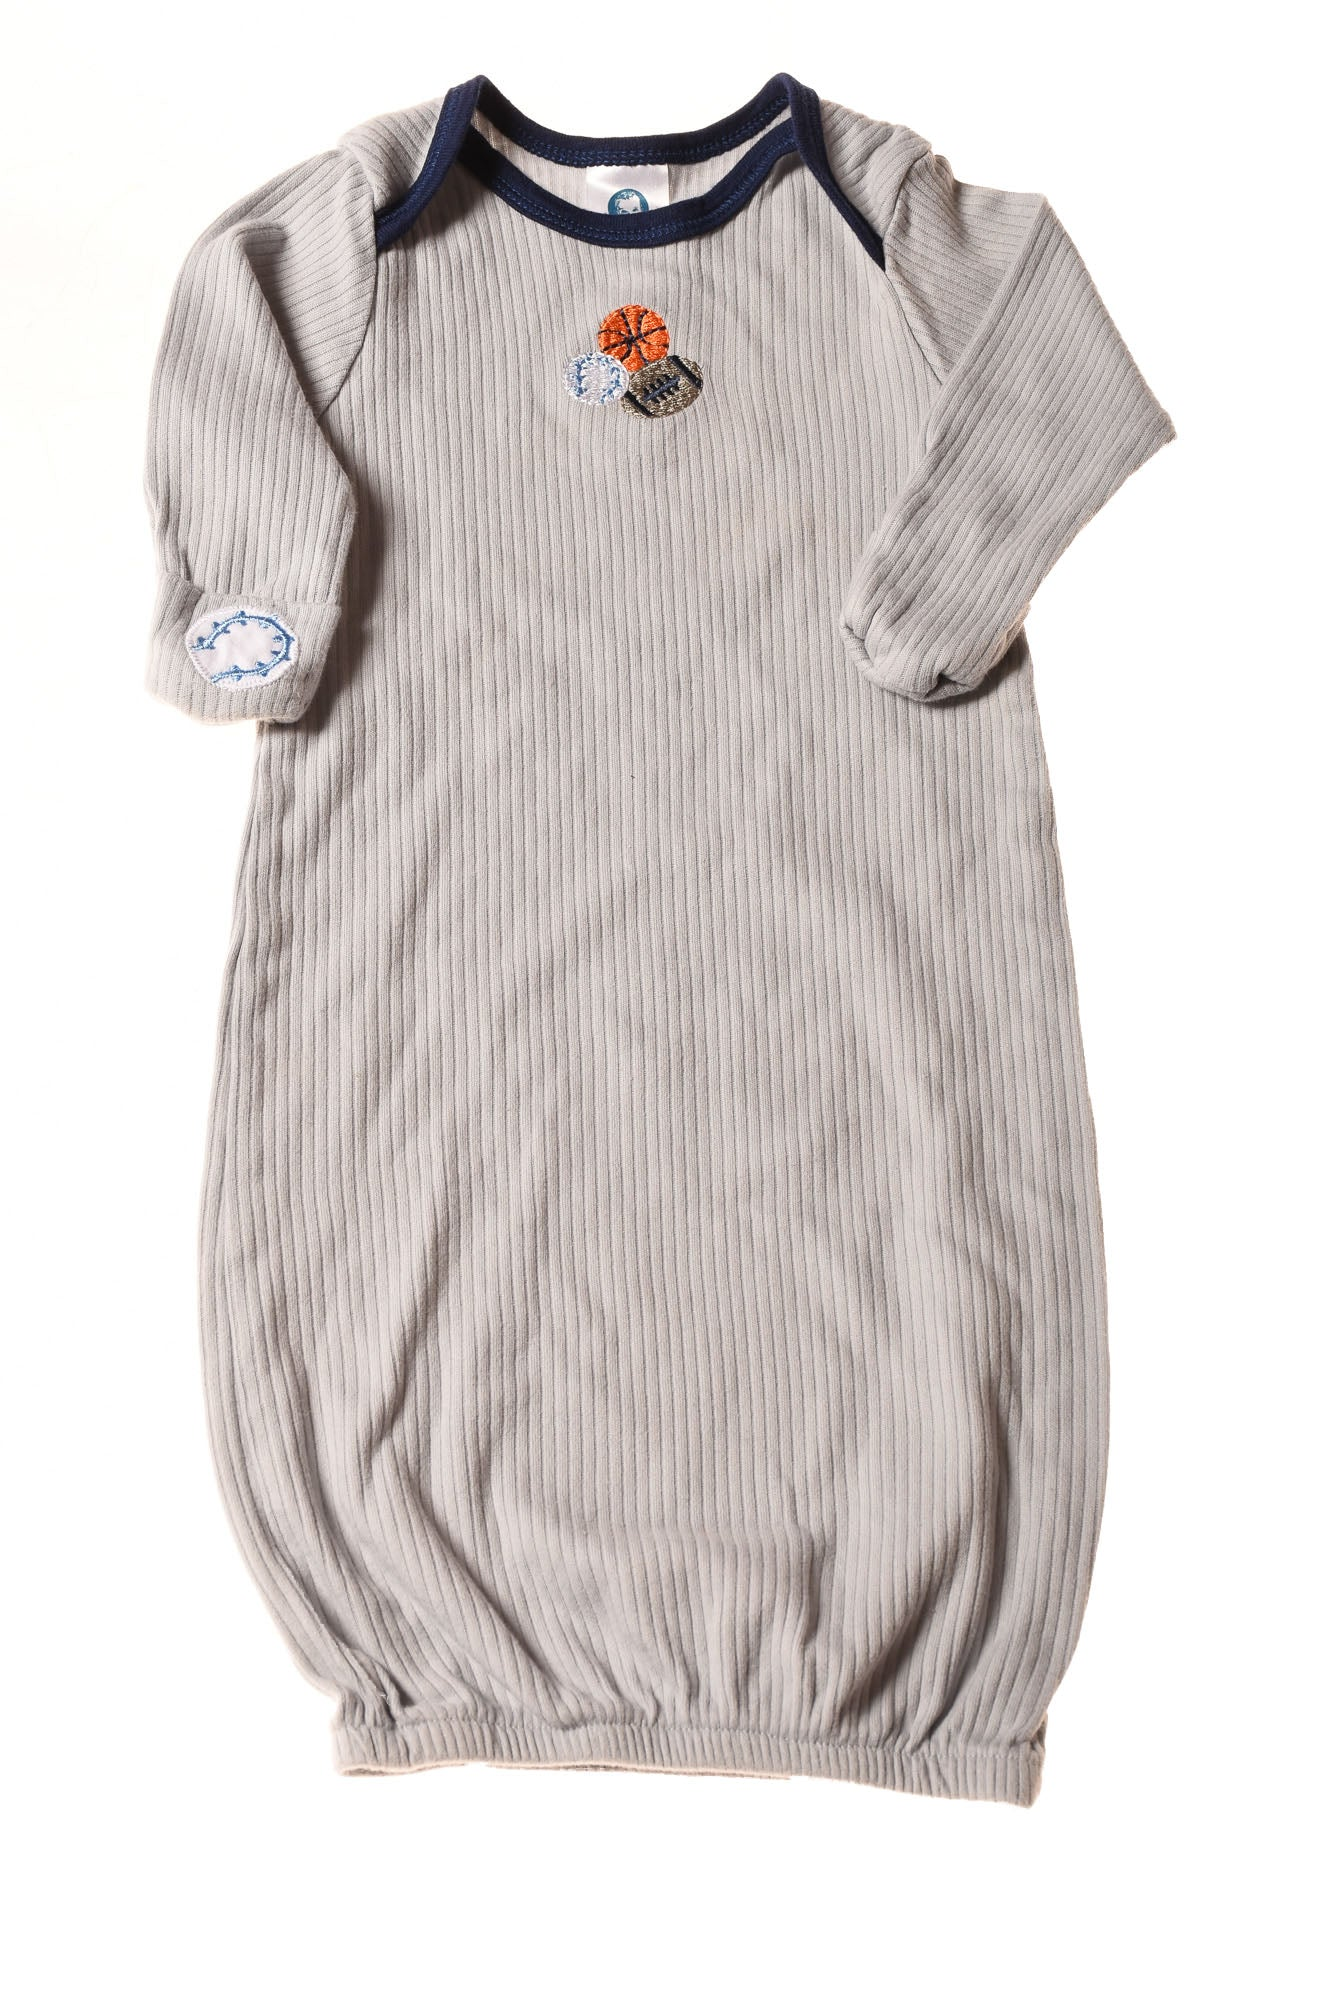 USED Gerber Baby Boy\'s Sleep Gown 0-6 months Gray - Village Discount ...